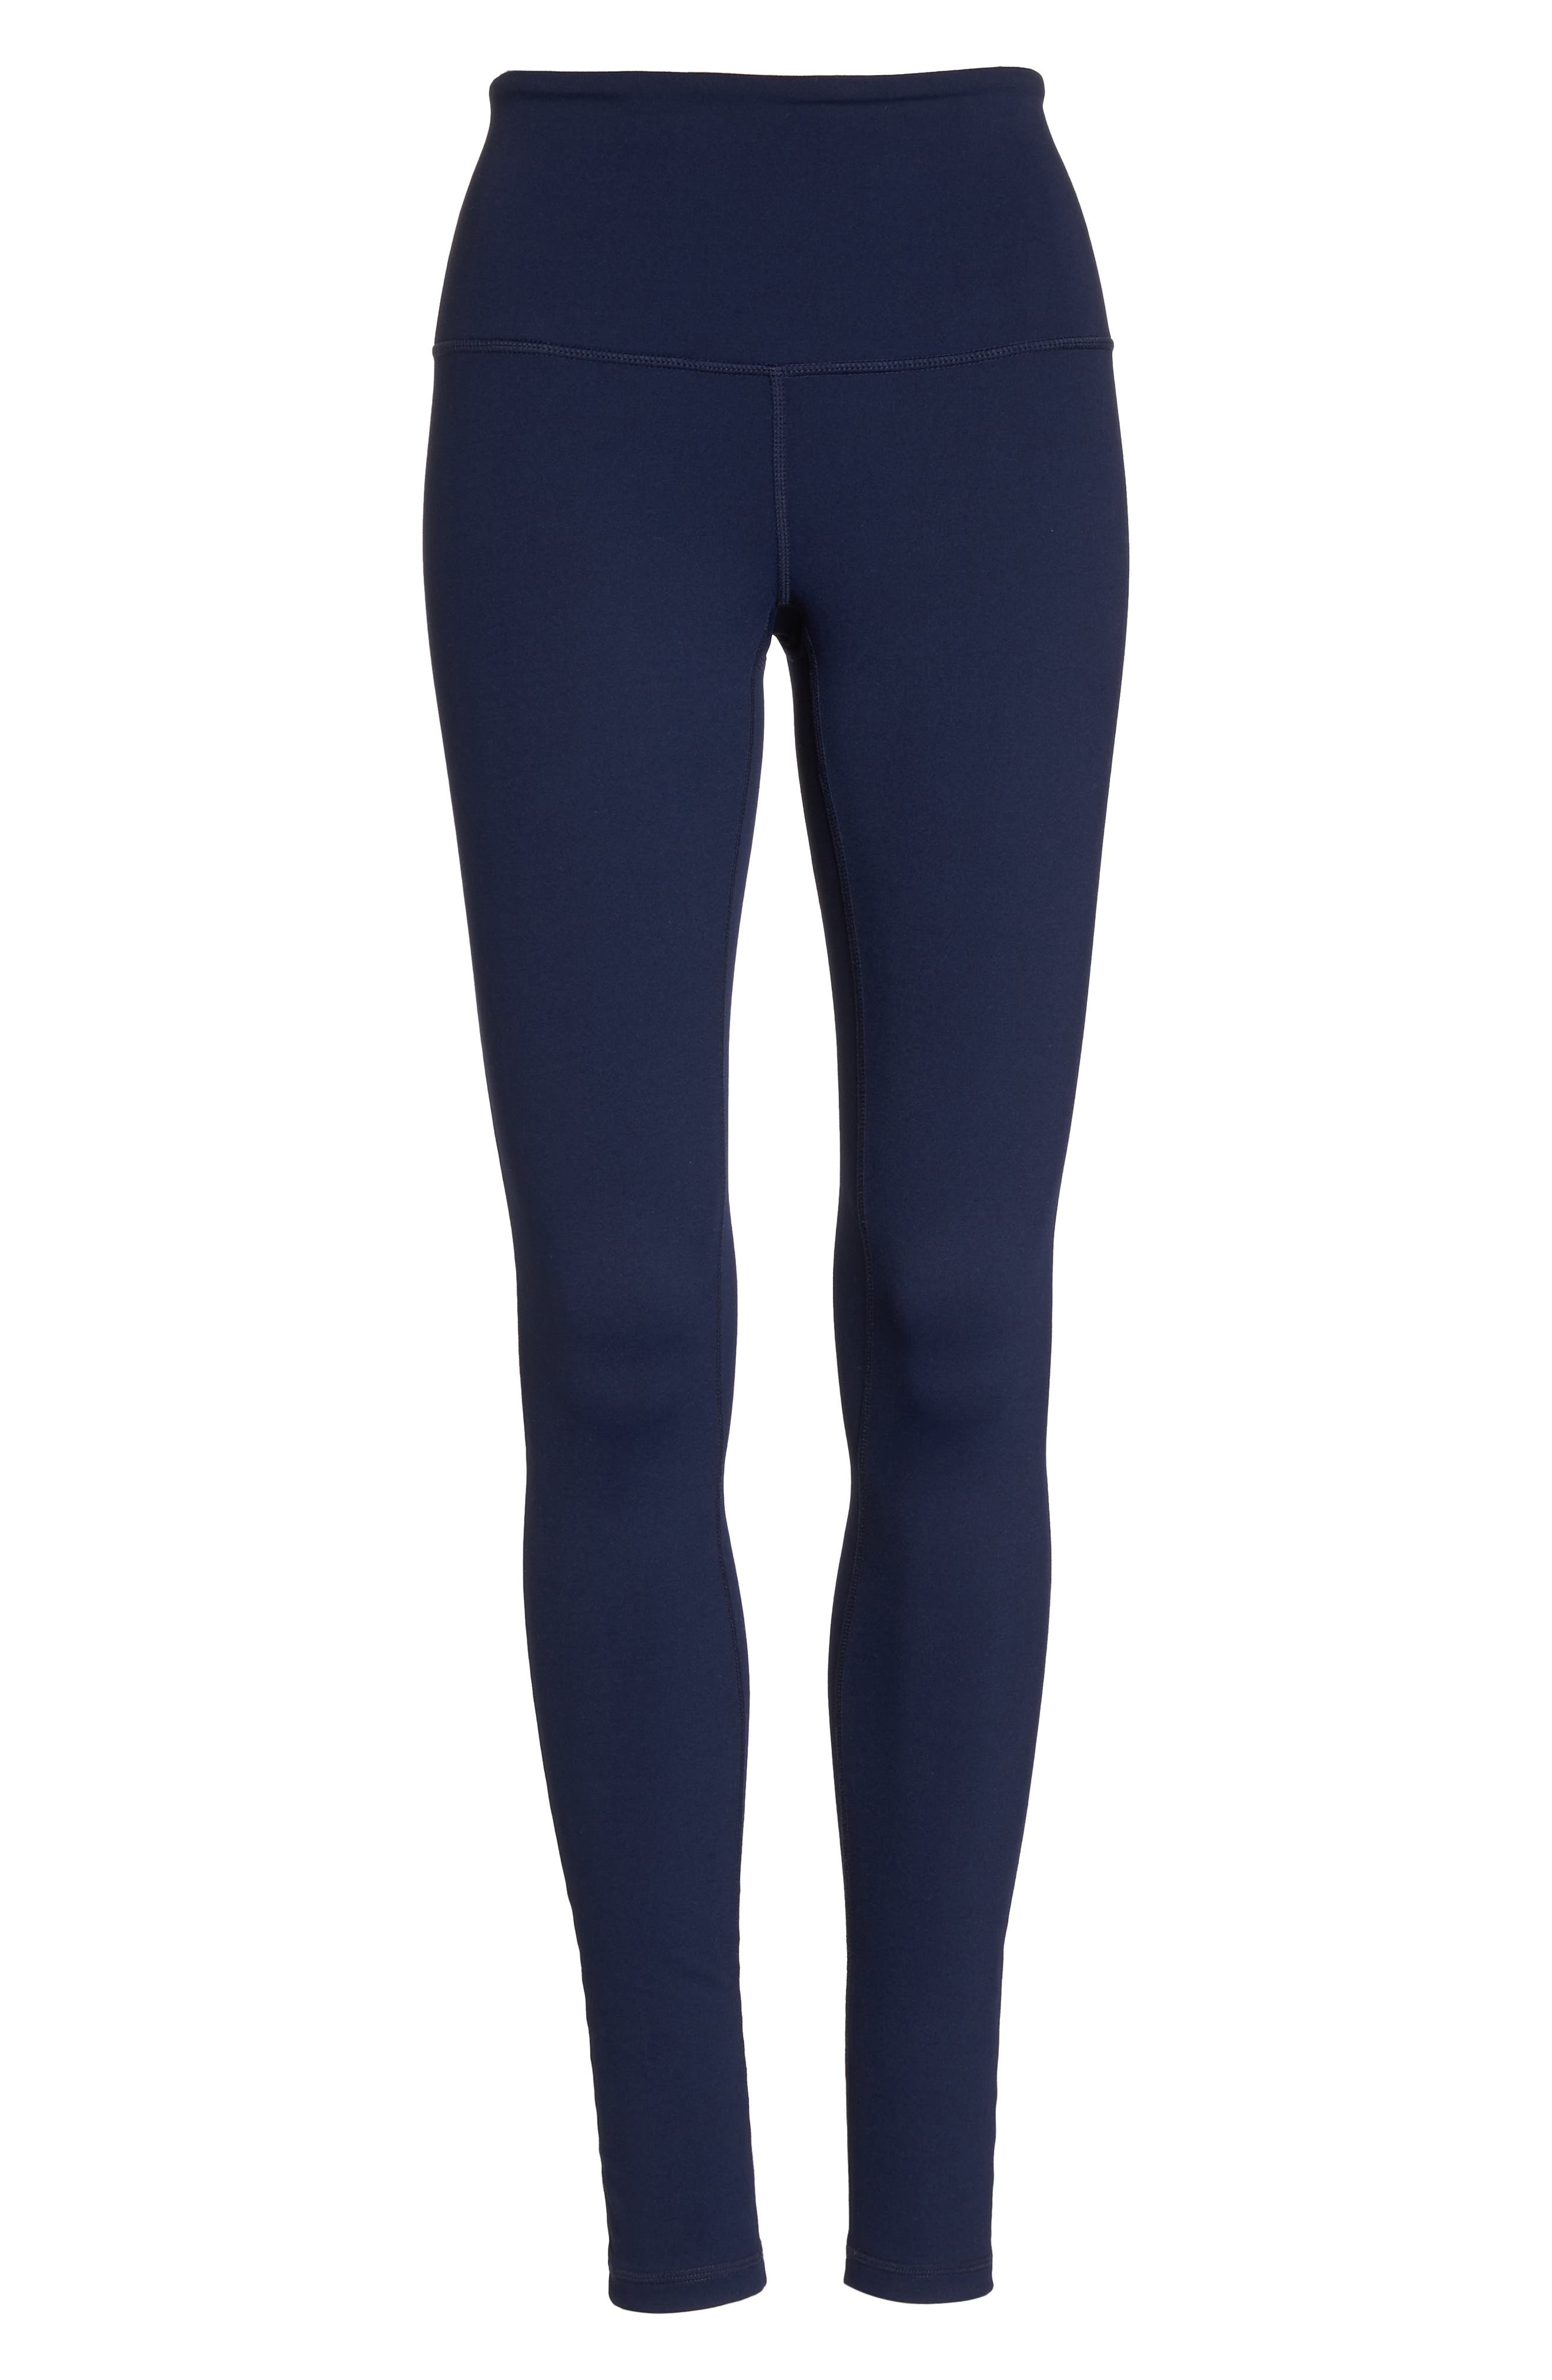 Live In High Waist Leggings,                             Alternate thumbnail 6, color,                             Navy Maritime